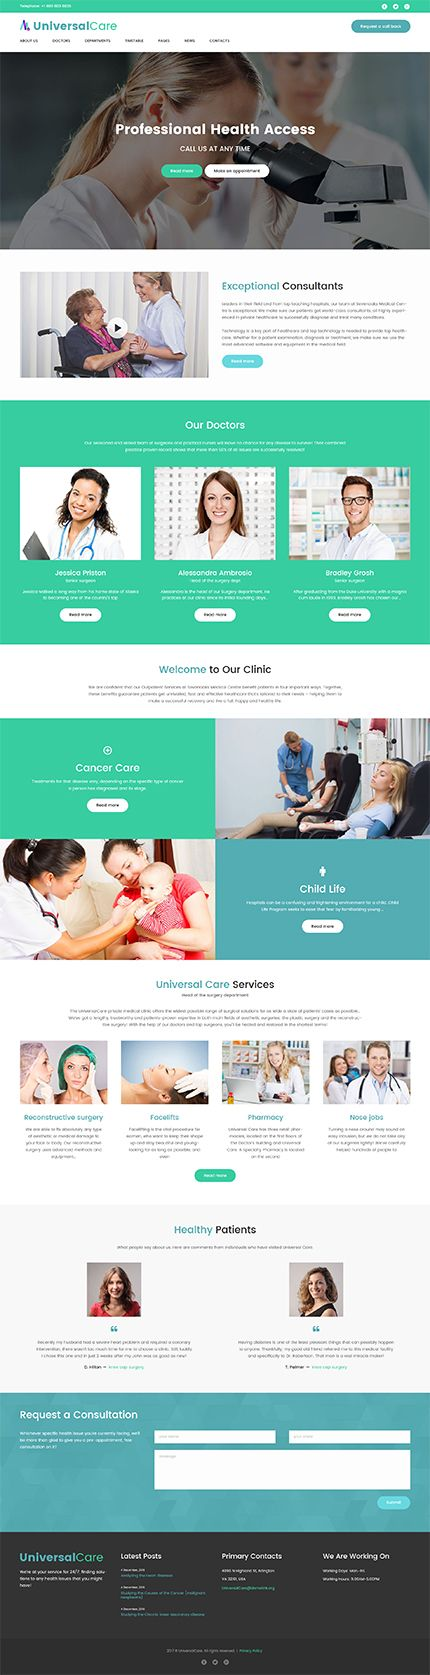 Medical website inspirations at your coffee break! Browse for more WordPress #templates! // Regular price: $75 // Sources available:.PHP, This theme is widgetized #Medical #WordPress  #store #equipment #aid #monitor #exam #first #medical #cosmetic #therapy #medicine #clinic #laboratory #veterinary #cardiology #ambulance #surgical #pump #ophthalmology #neonatal #respiratory #neurology #endoscopy #defibrillator #cardiologist